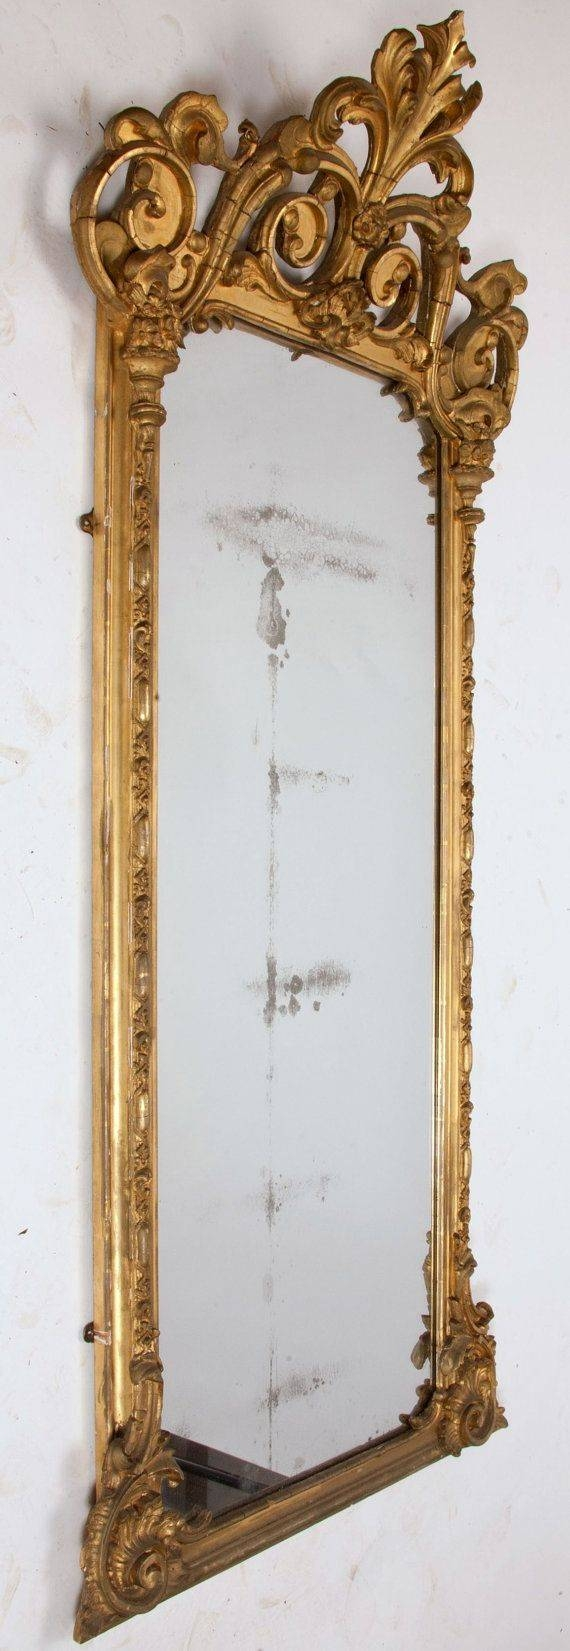 Best 25+ French Mirror Ideas On Pinterest | Antique Mirrors inside Antique French Floor Mirrors (Image 10 of 25)